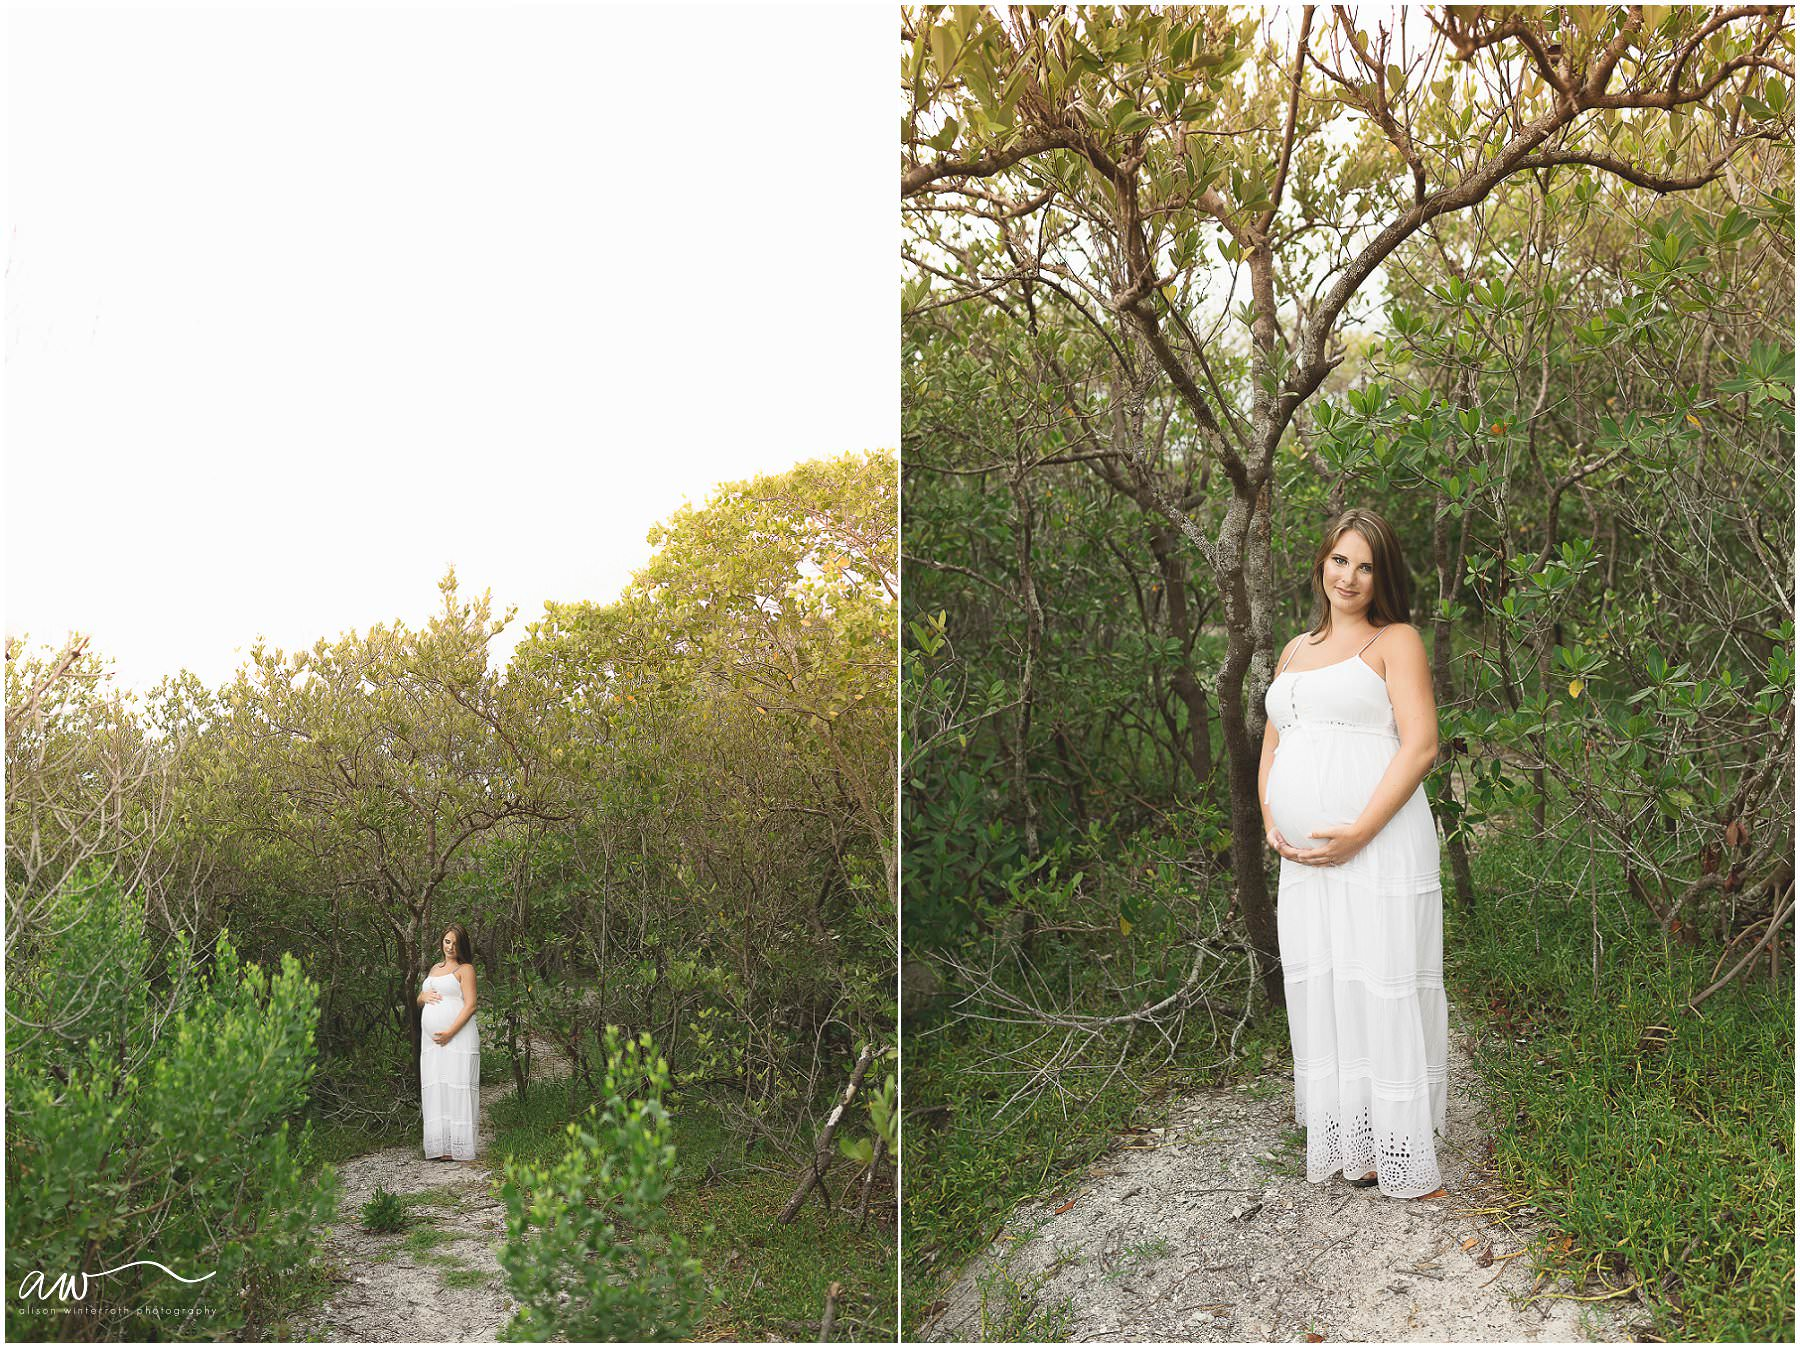 Pregnancy Pictures of a mom in a white dress in Tampa, FL at the beach.